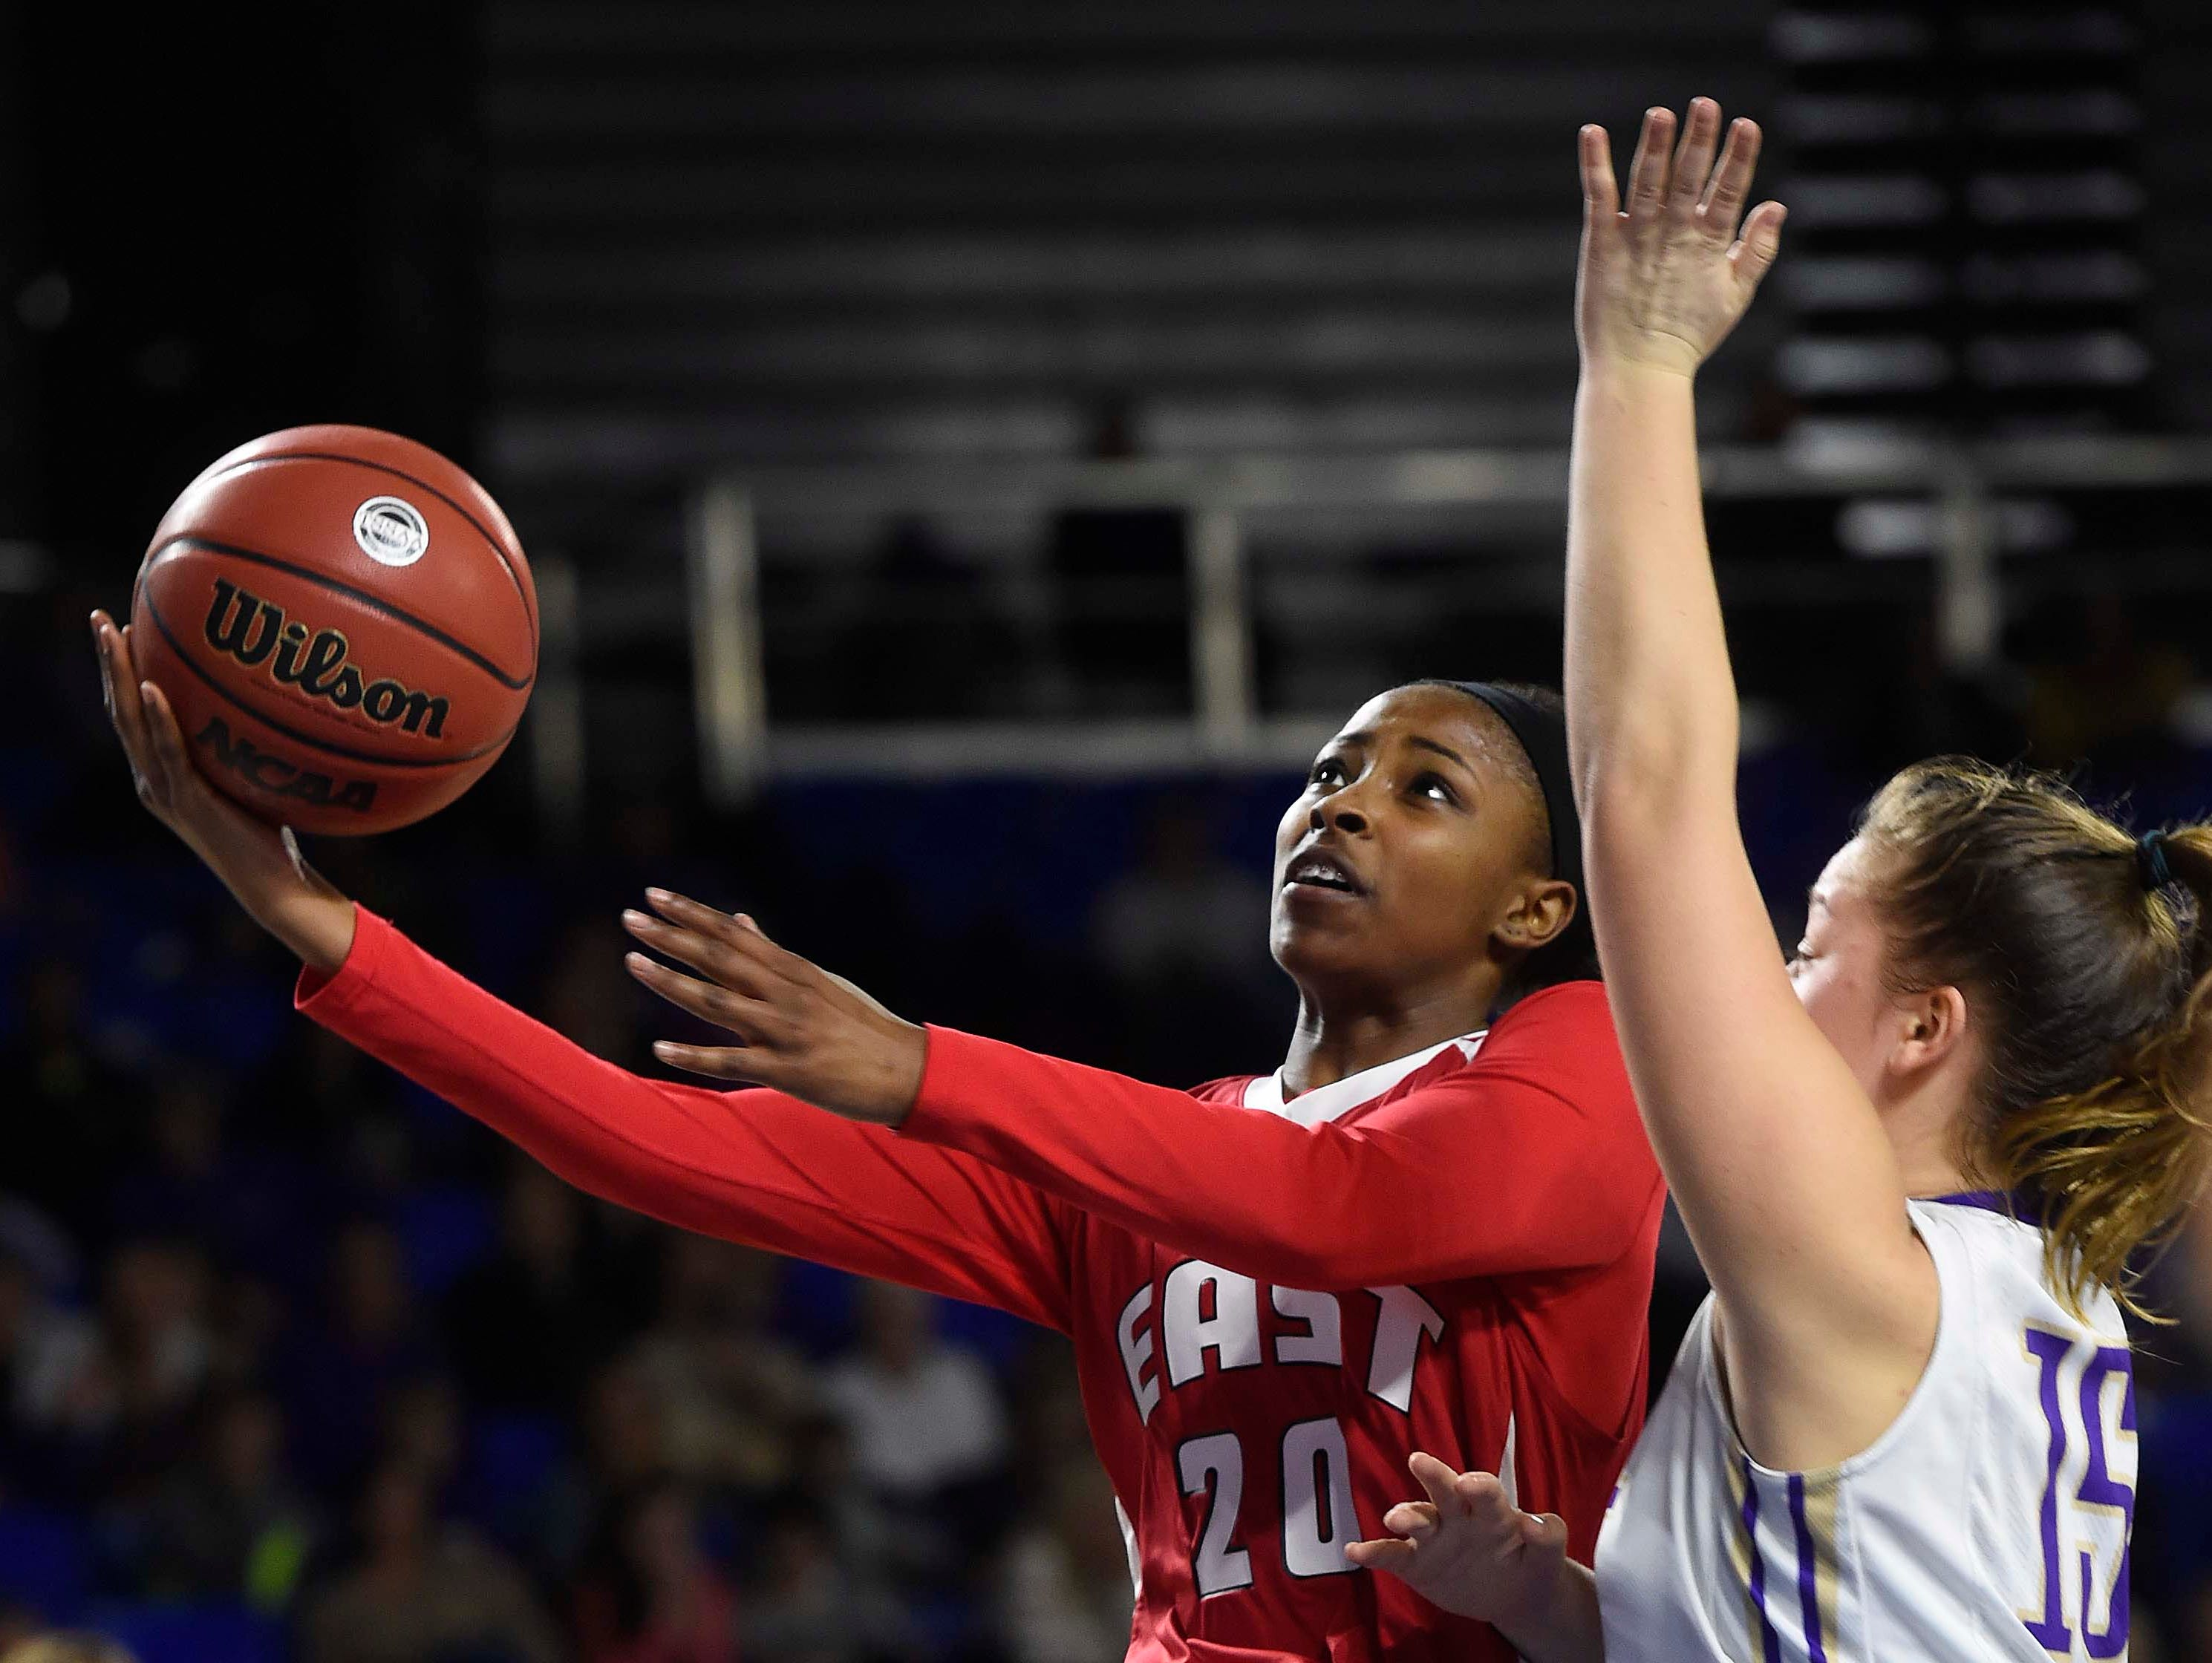 East's Erica Haynes-Overton (20) shoots for two of her 16 points around CPA's Addie Russell Omer (15) as East Nashville wins 47-35 in the Division I Class AA Girl's basketball tournament at the Murphy Center on MTSU's campus March 10, 2016 in Murfreesboro, Tenn.